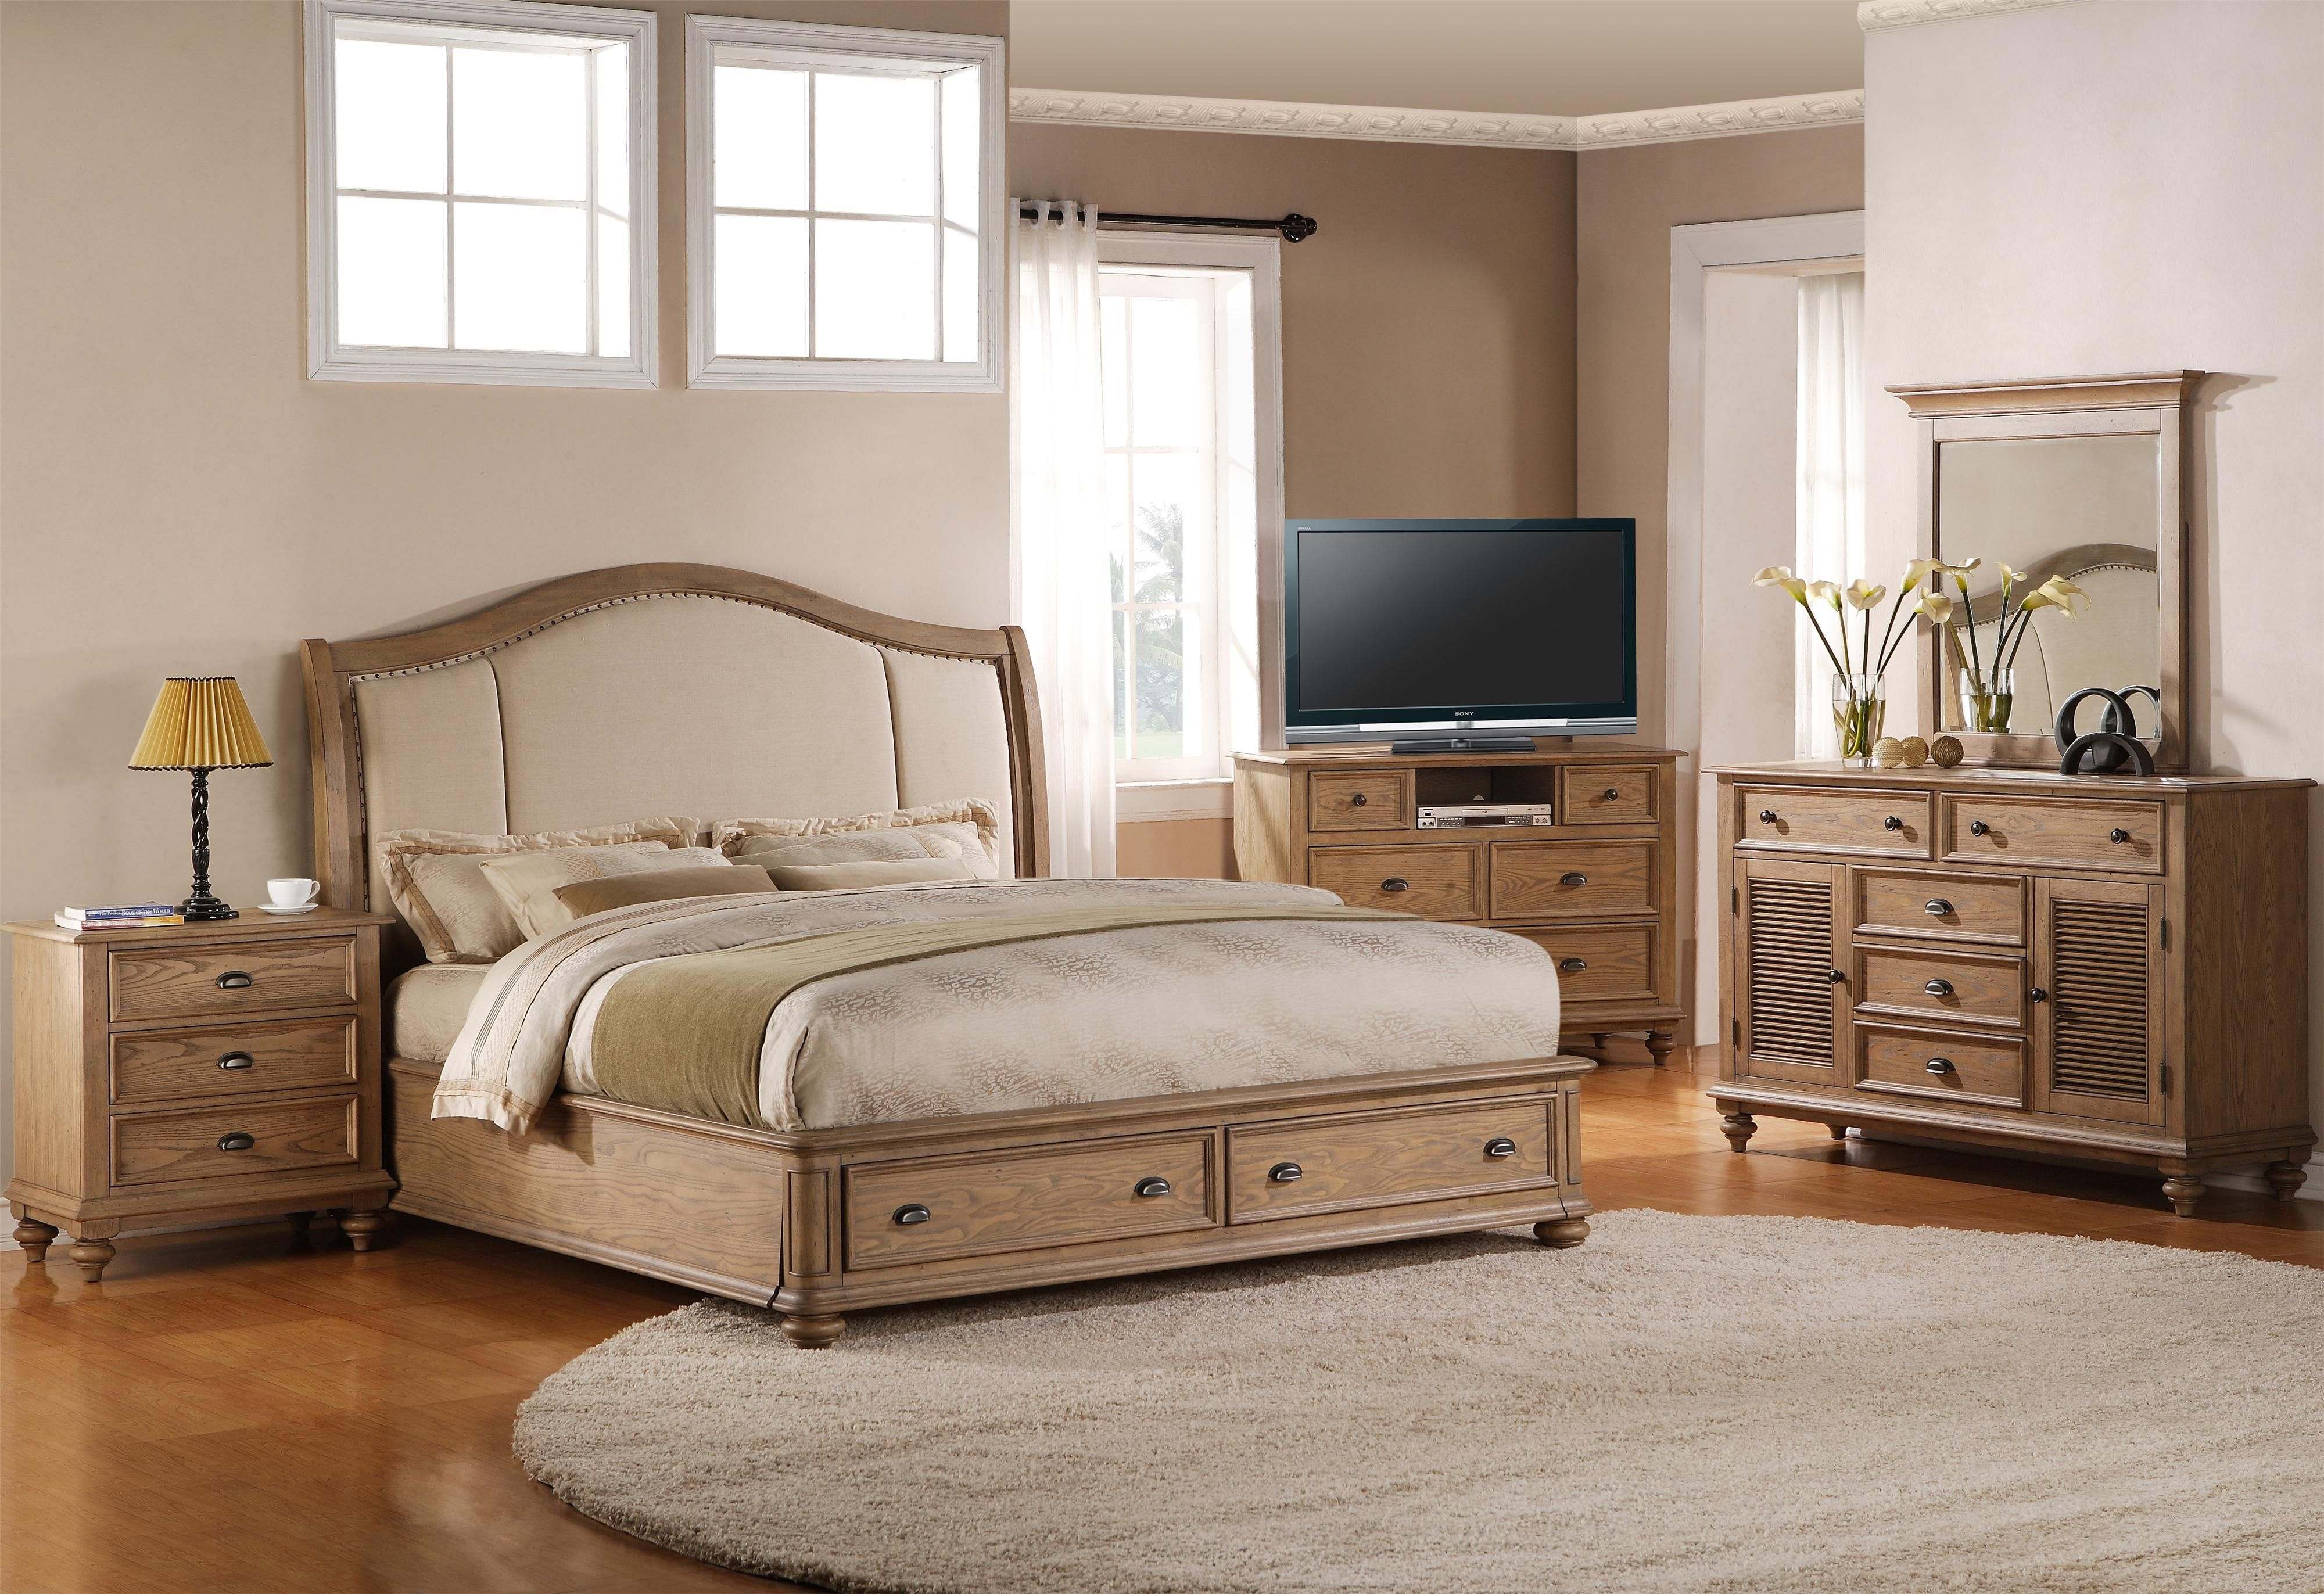 Full Queen Upholstered Headboard Bed with Storage Footboard